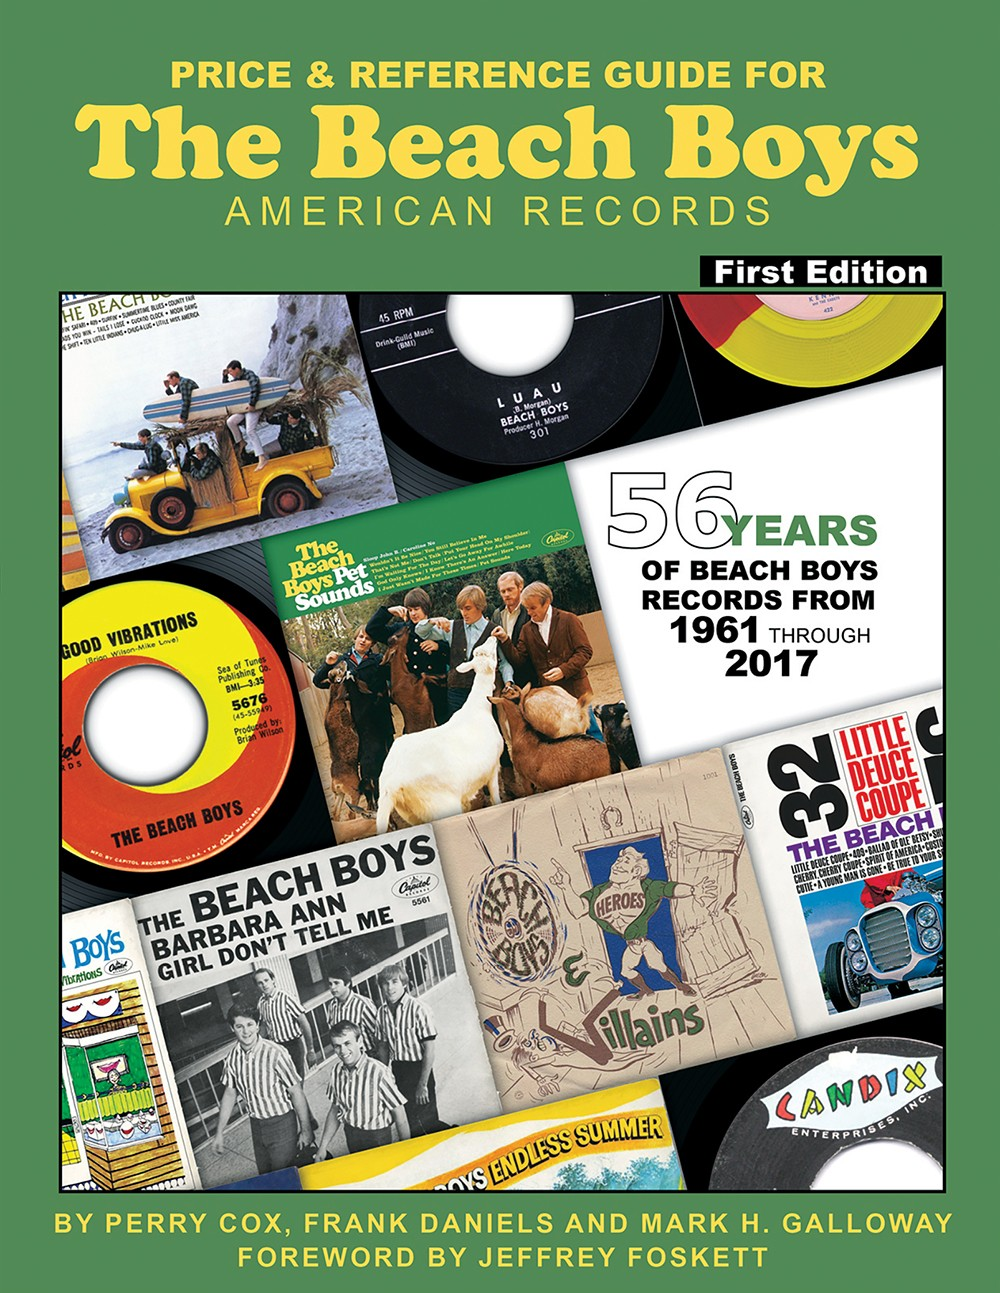 Beach Boys price guide AD